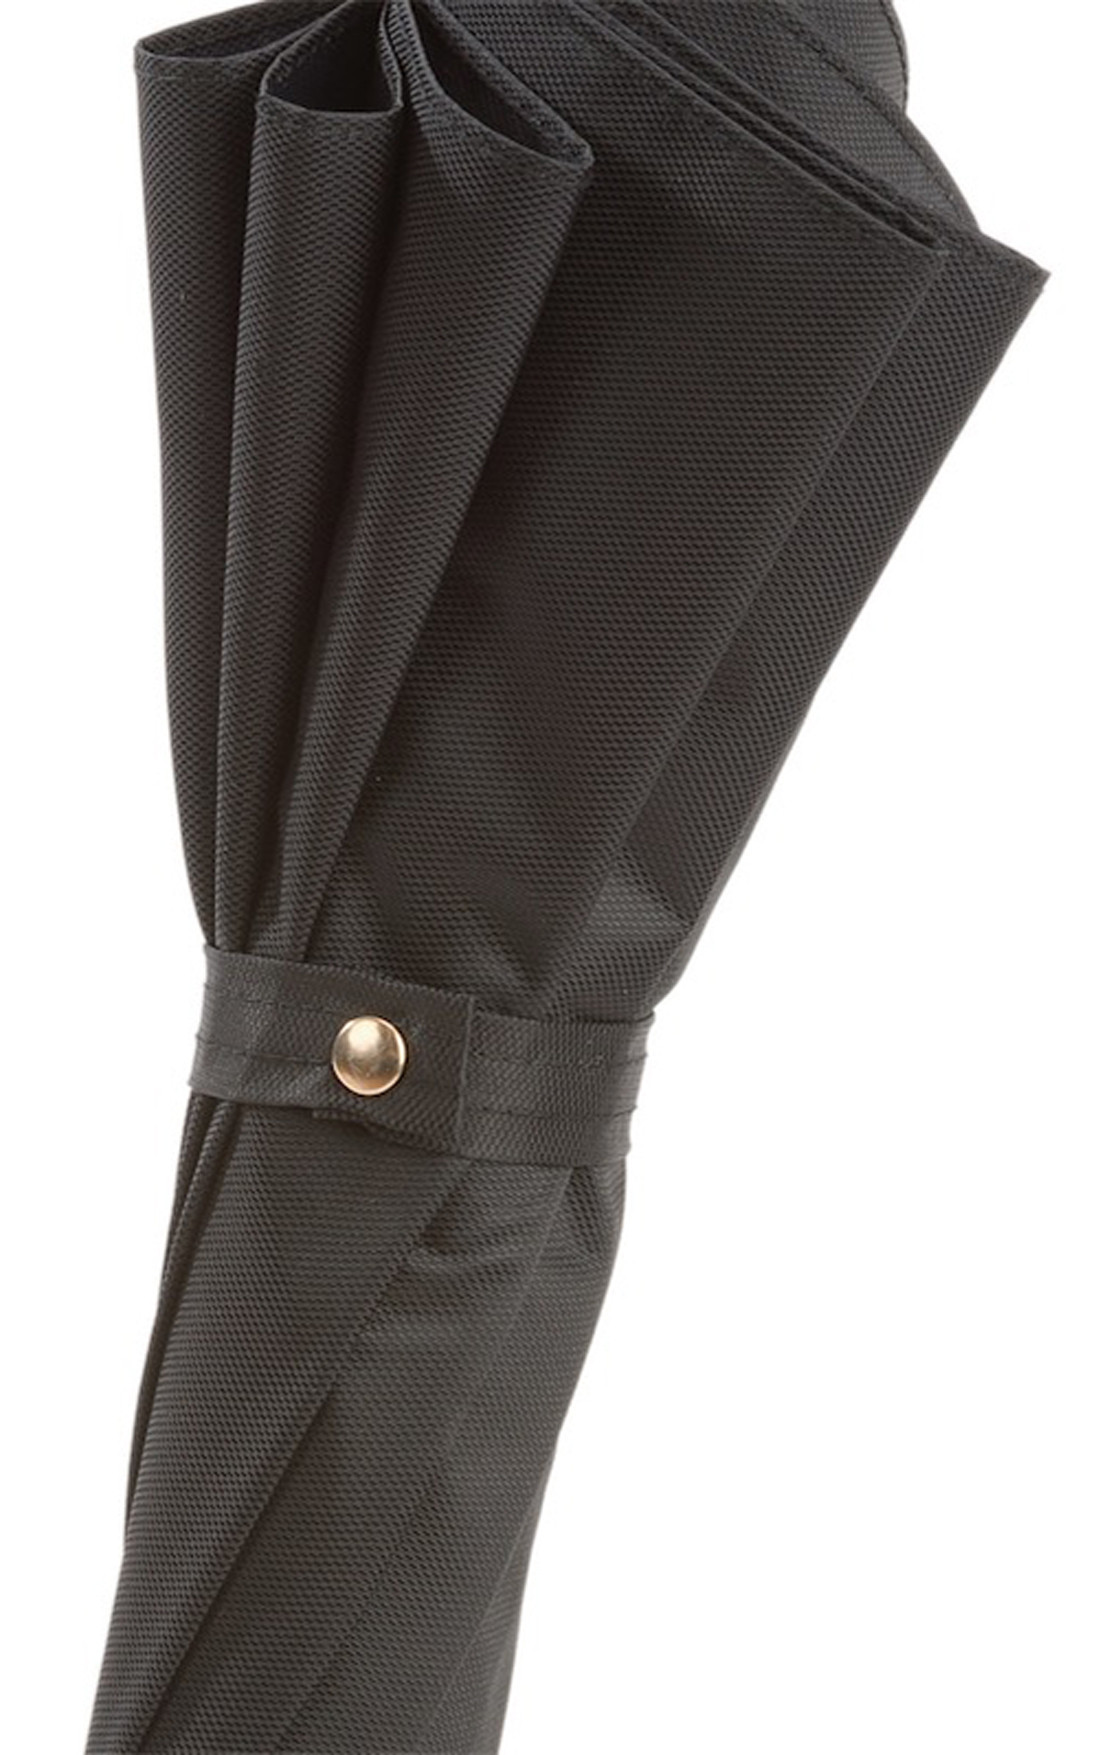 Pasotti - Black Umbrella with Red Lucifer Handle (479-OXFORD/18-K77-LUCIFER-ROSSO)